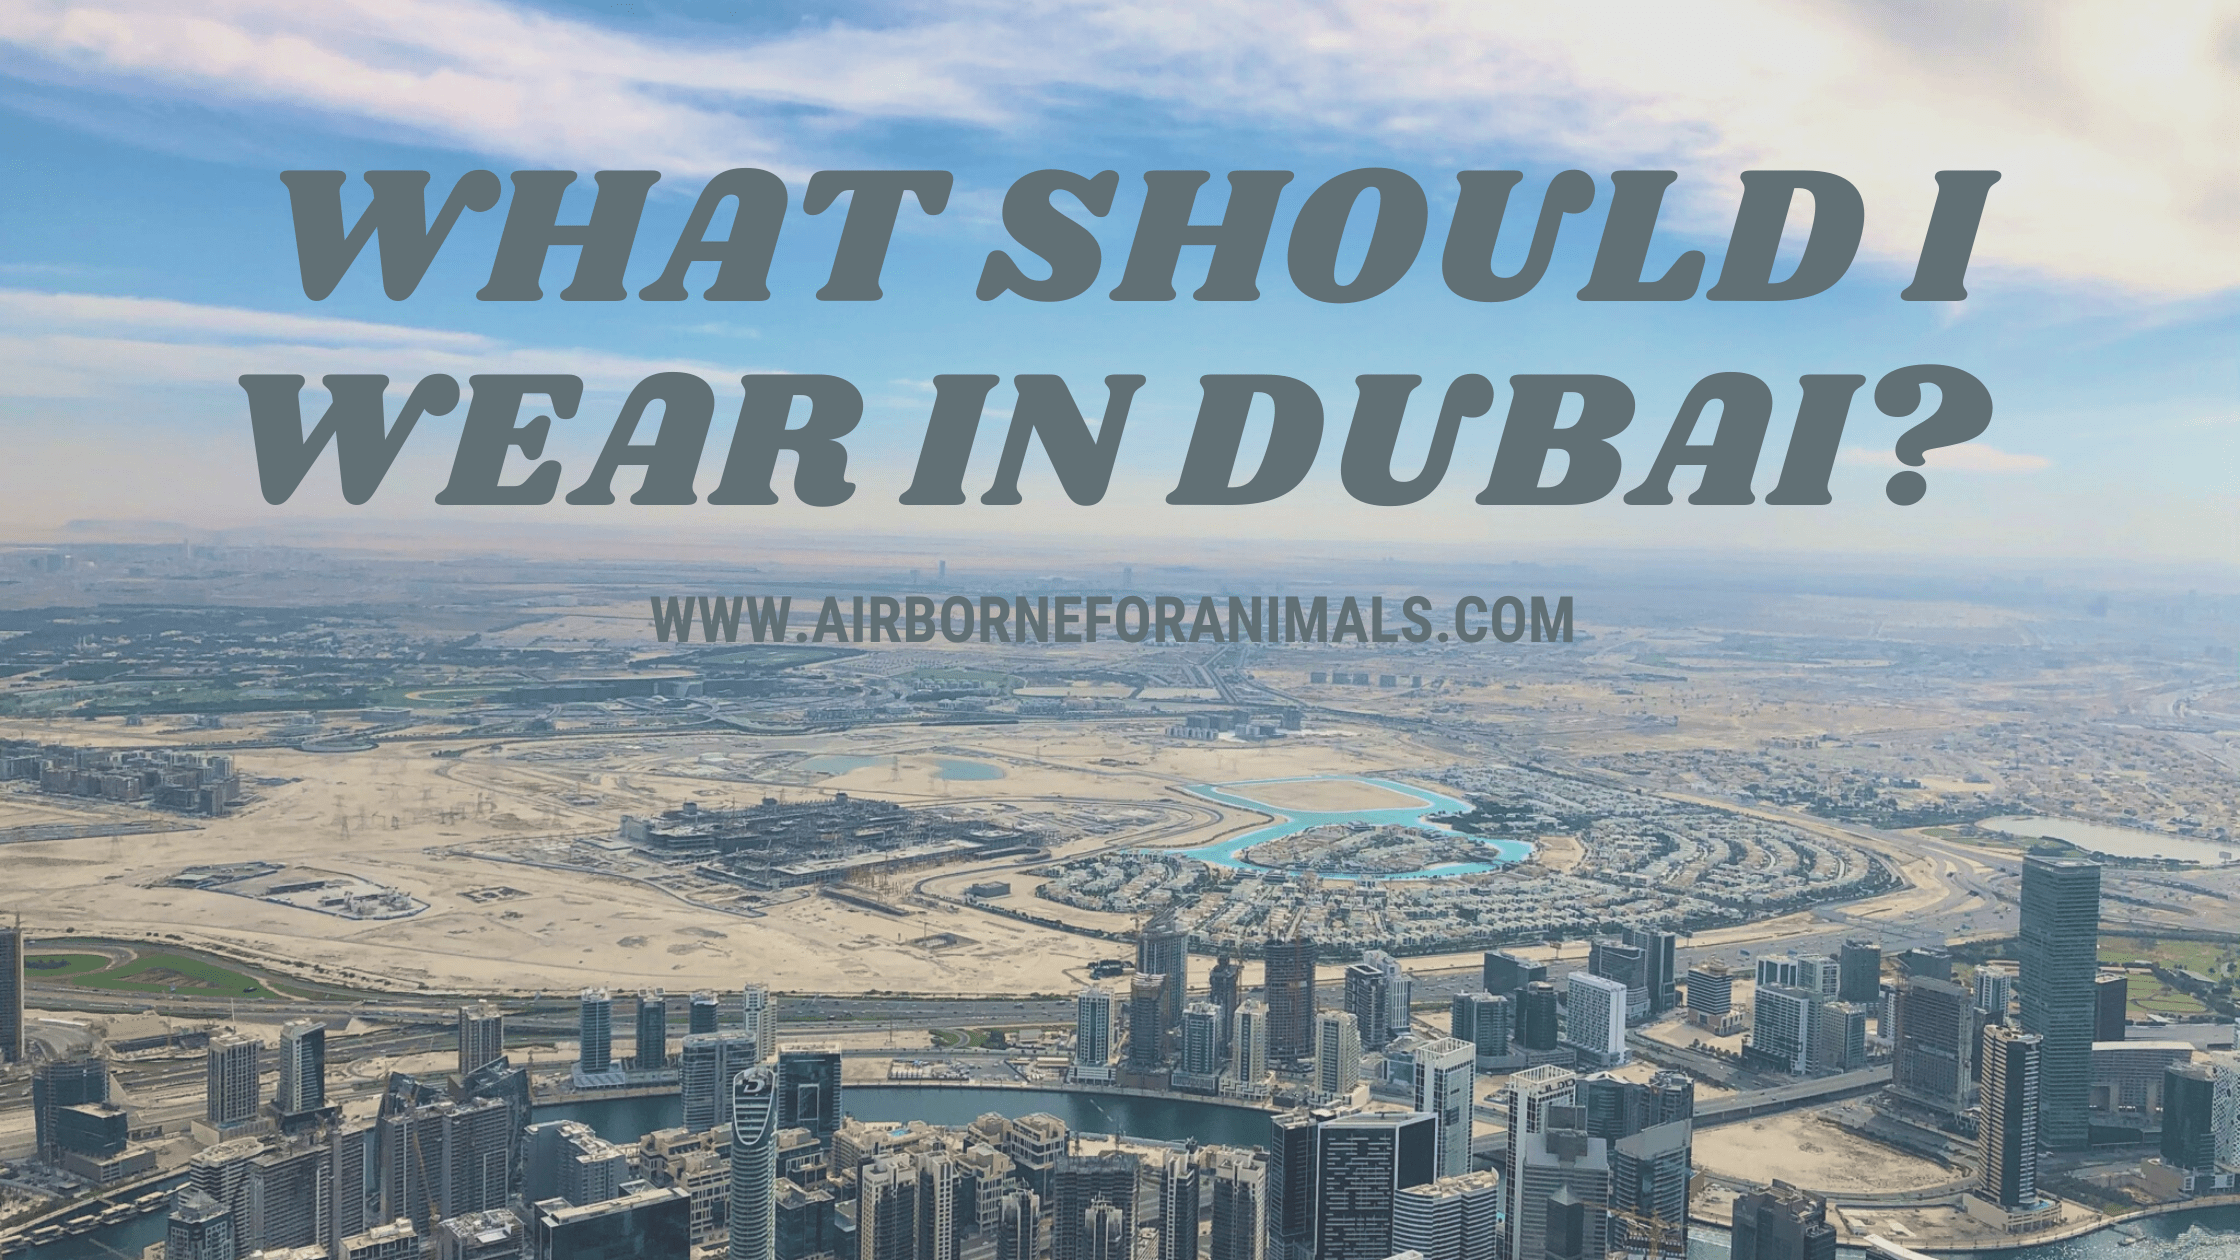 What Should I Wear in Dubai?